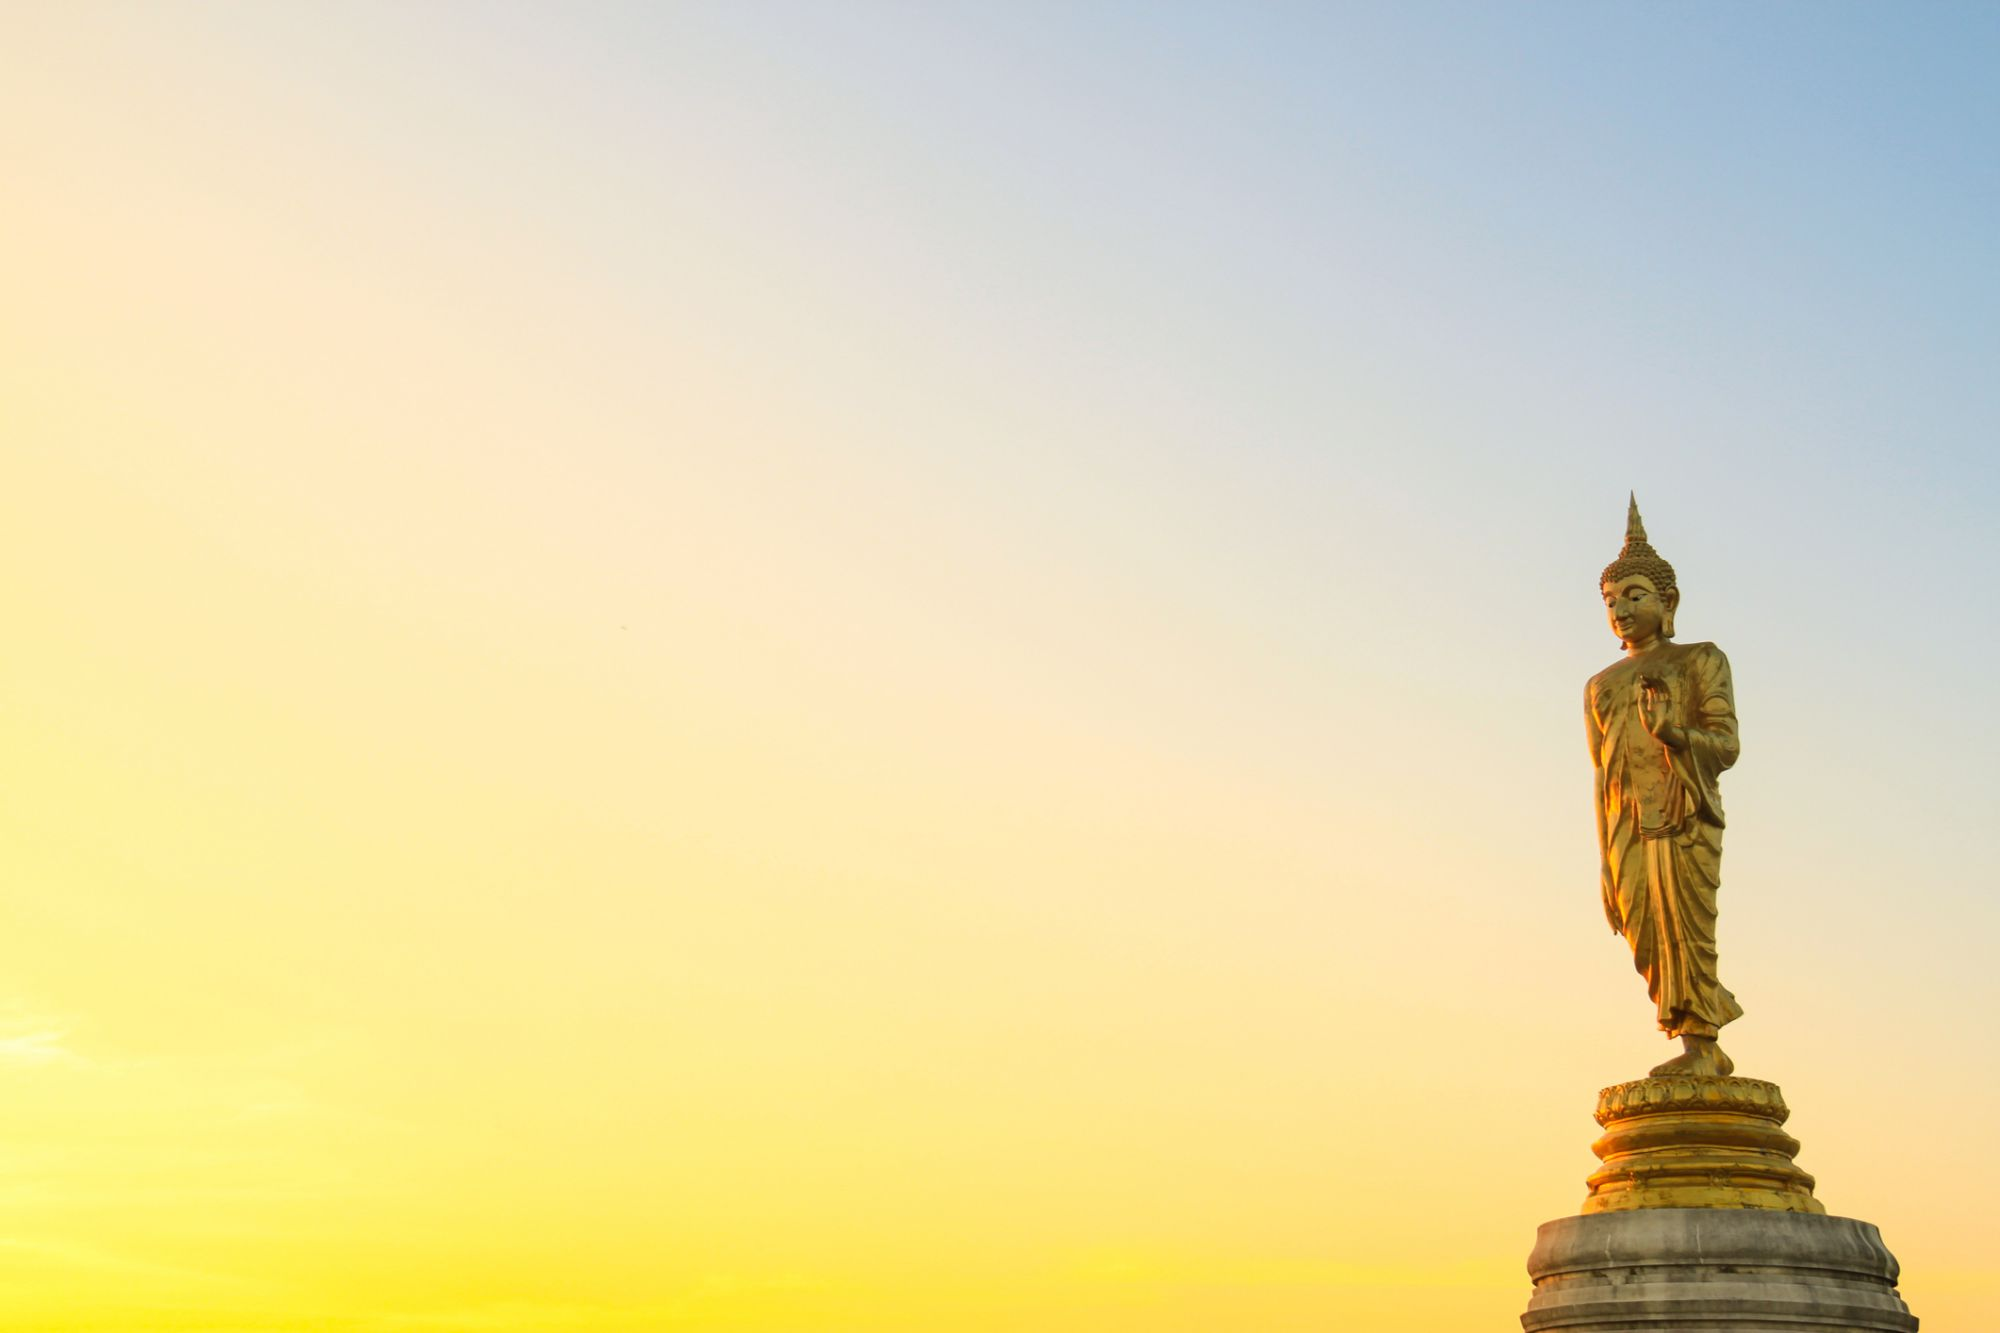 Vesak Day 2021: 4 Ways You Can Celebrate the Occasion Despite the Heightened Alert